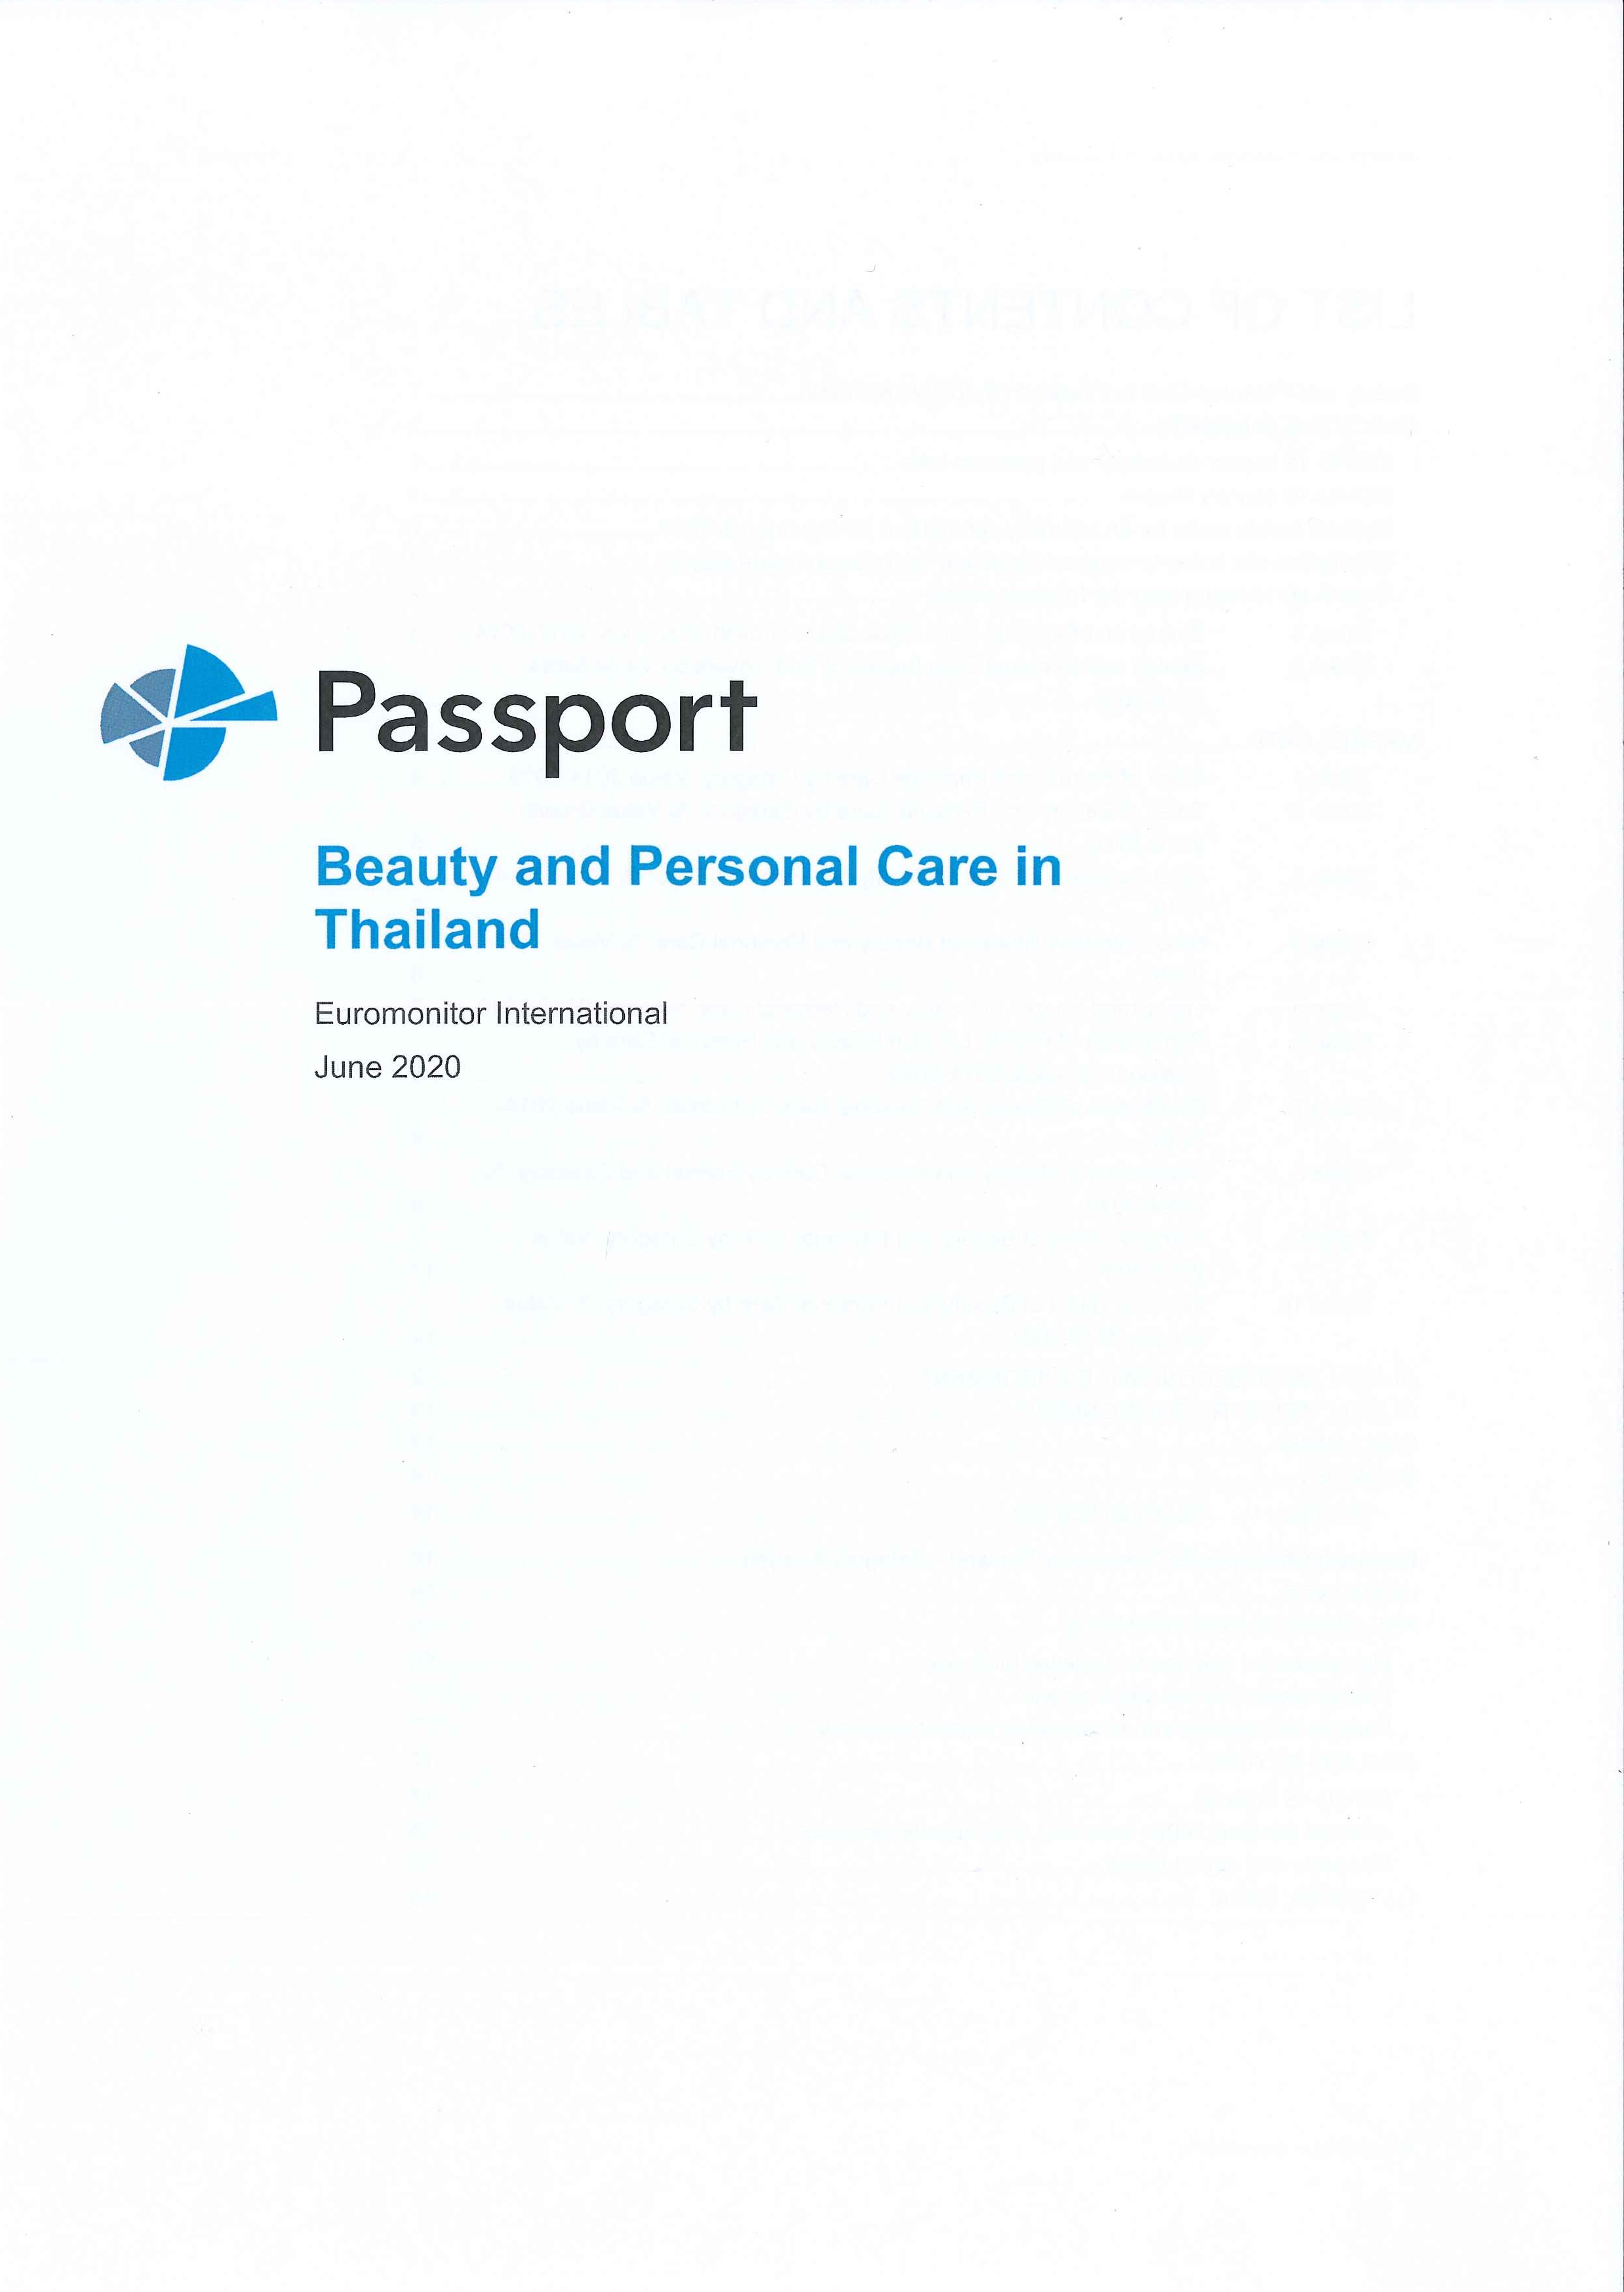 Beauty and personal care in Thailand [e-book]